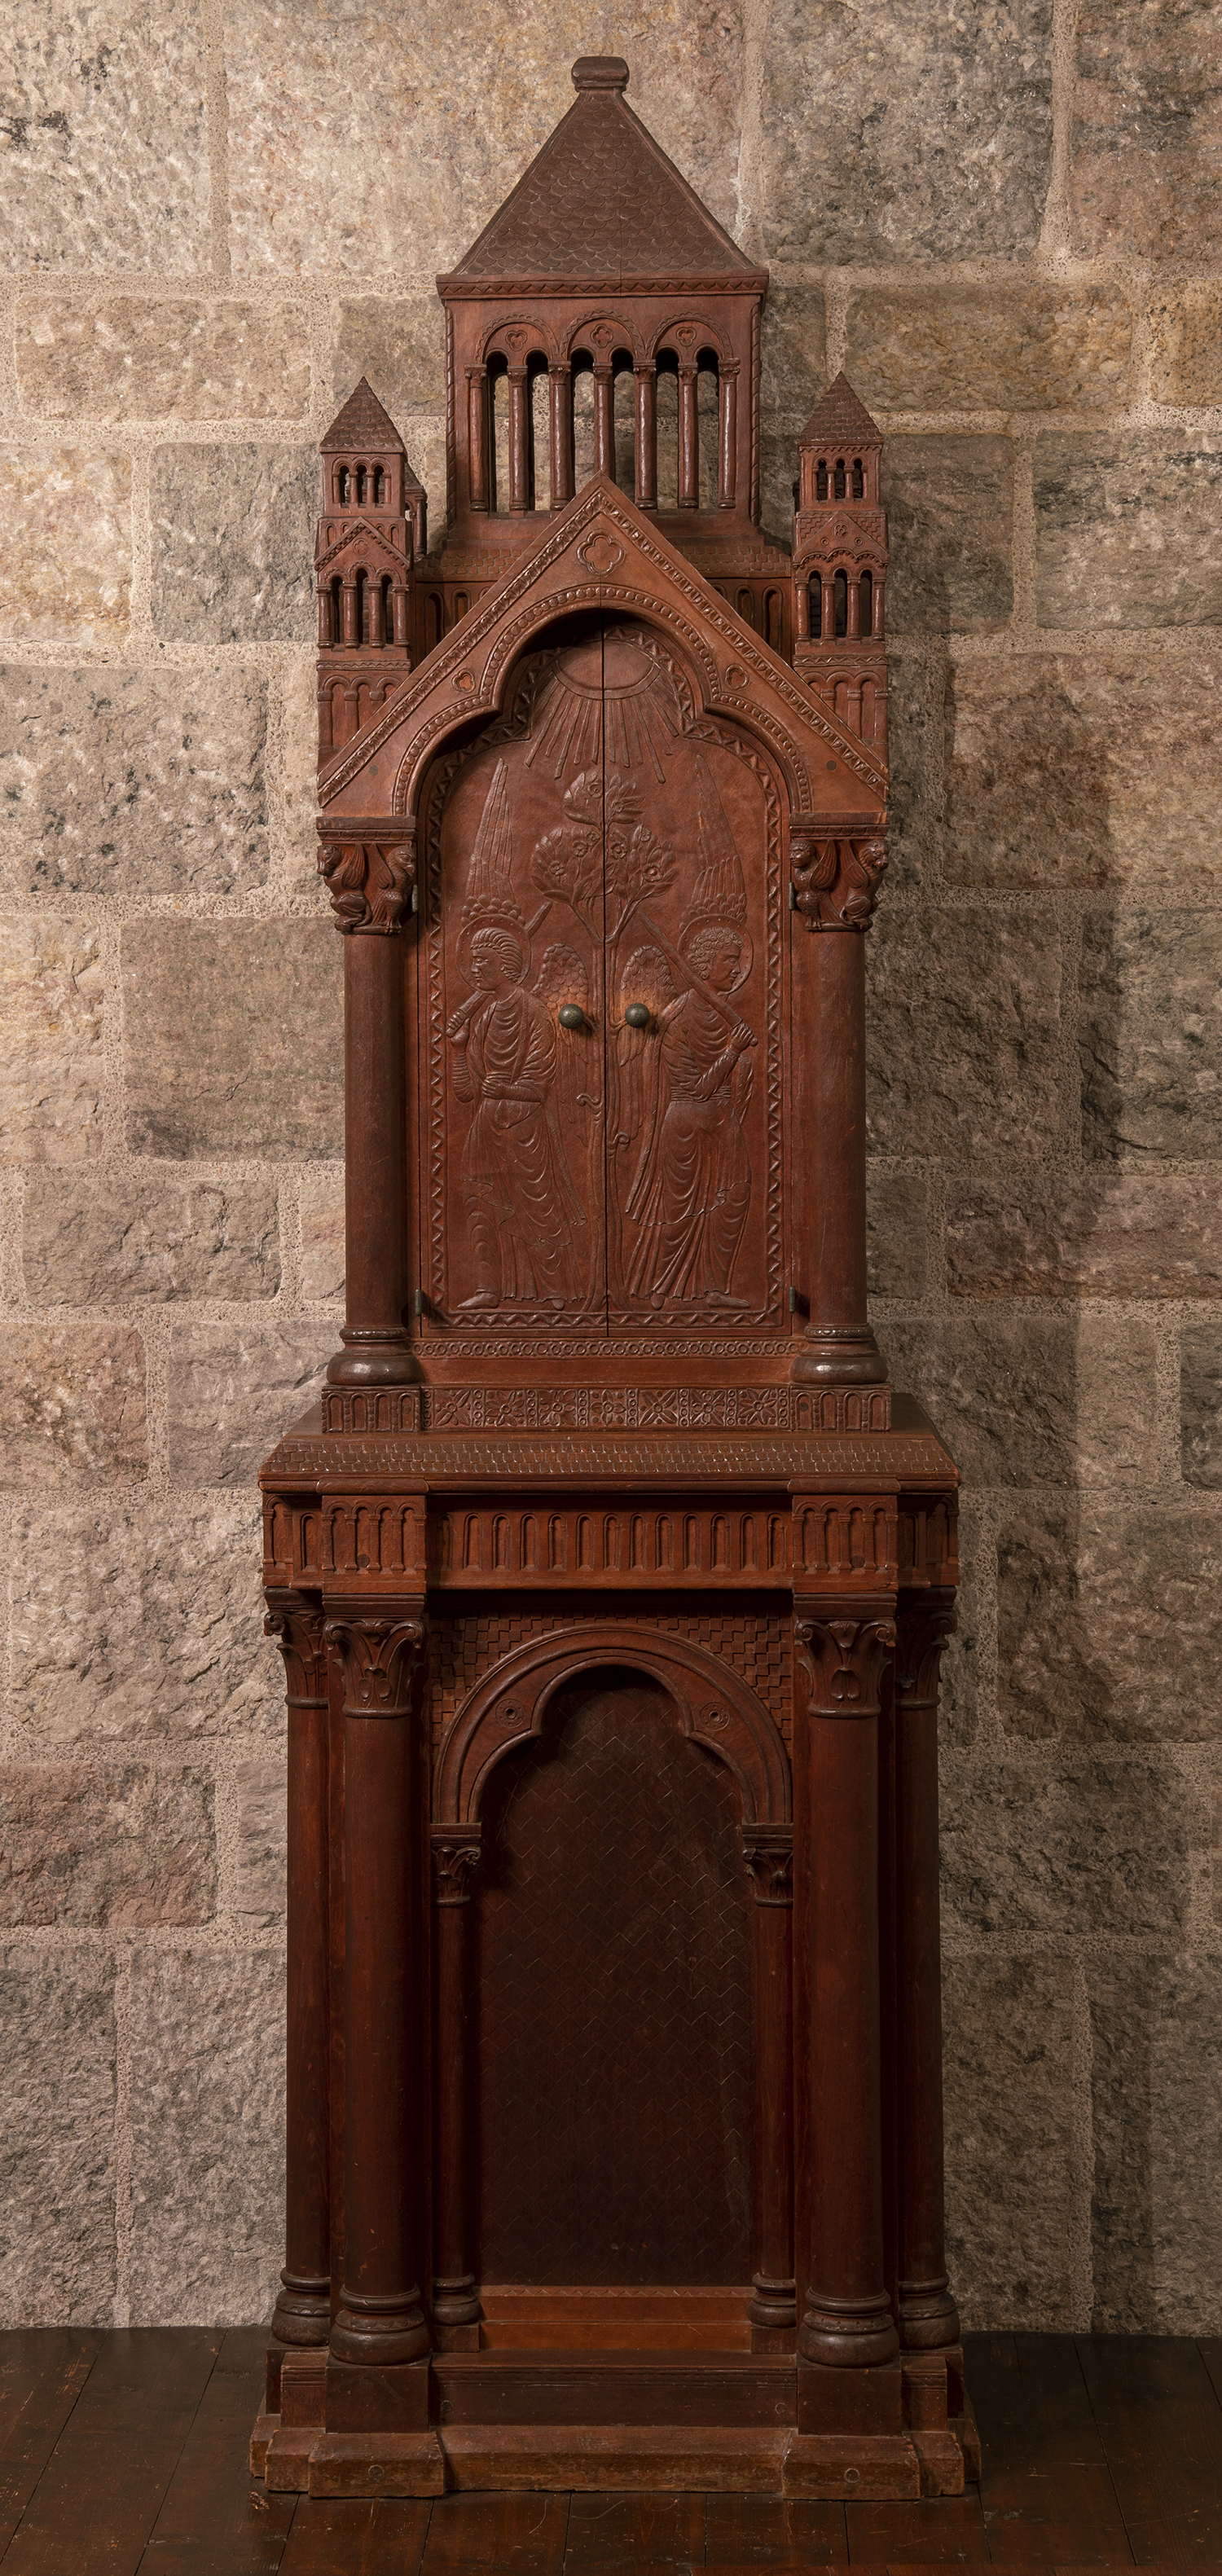 Figure 2: Raymond Pitcairn directed Frank Jeck to carve this Bible cabinet for use in the family's chapel around the year 1926, before construction had begun on Glencairn. The biblical imagery on the cabinet is repeated elsewhere in the chapel in stone and glass mosaic.